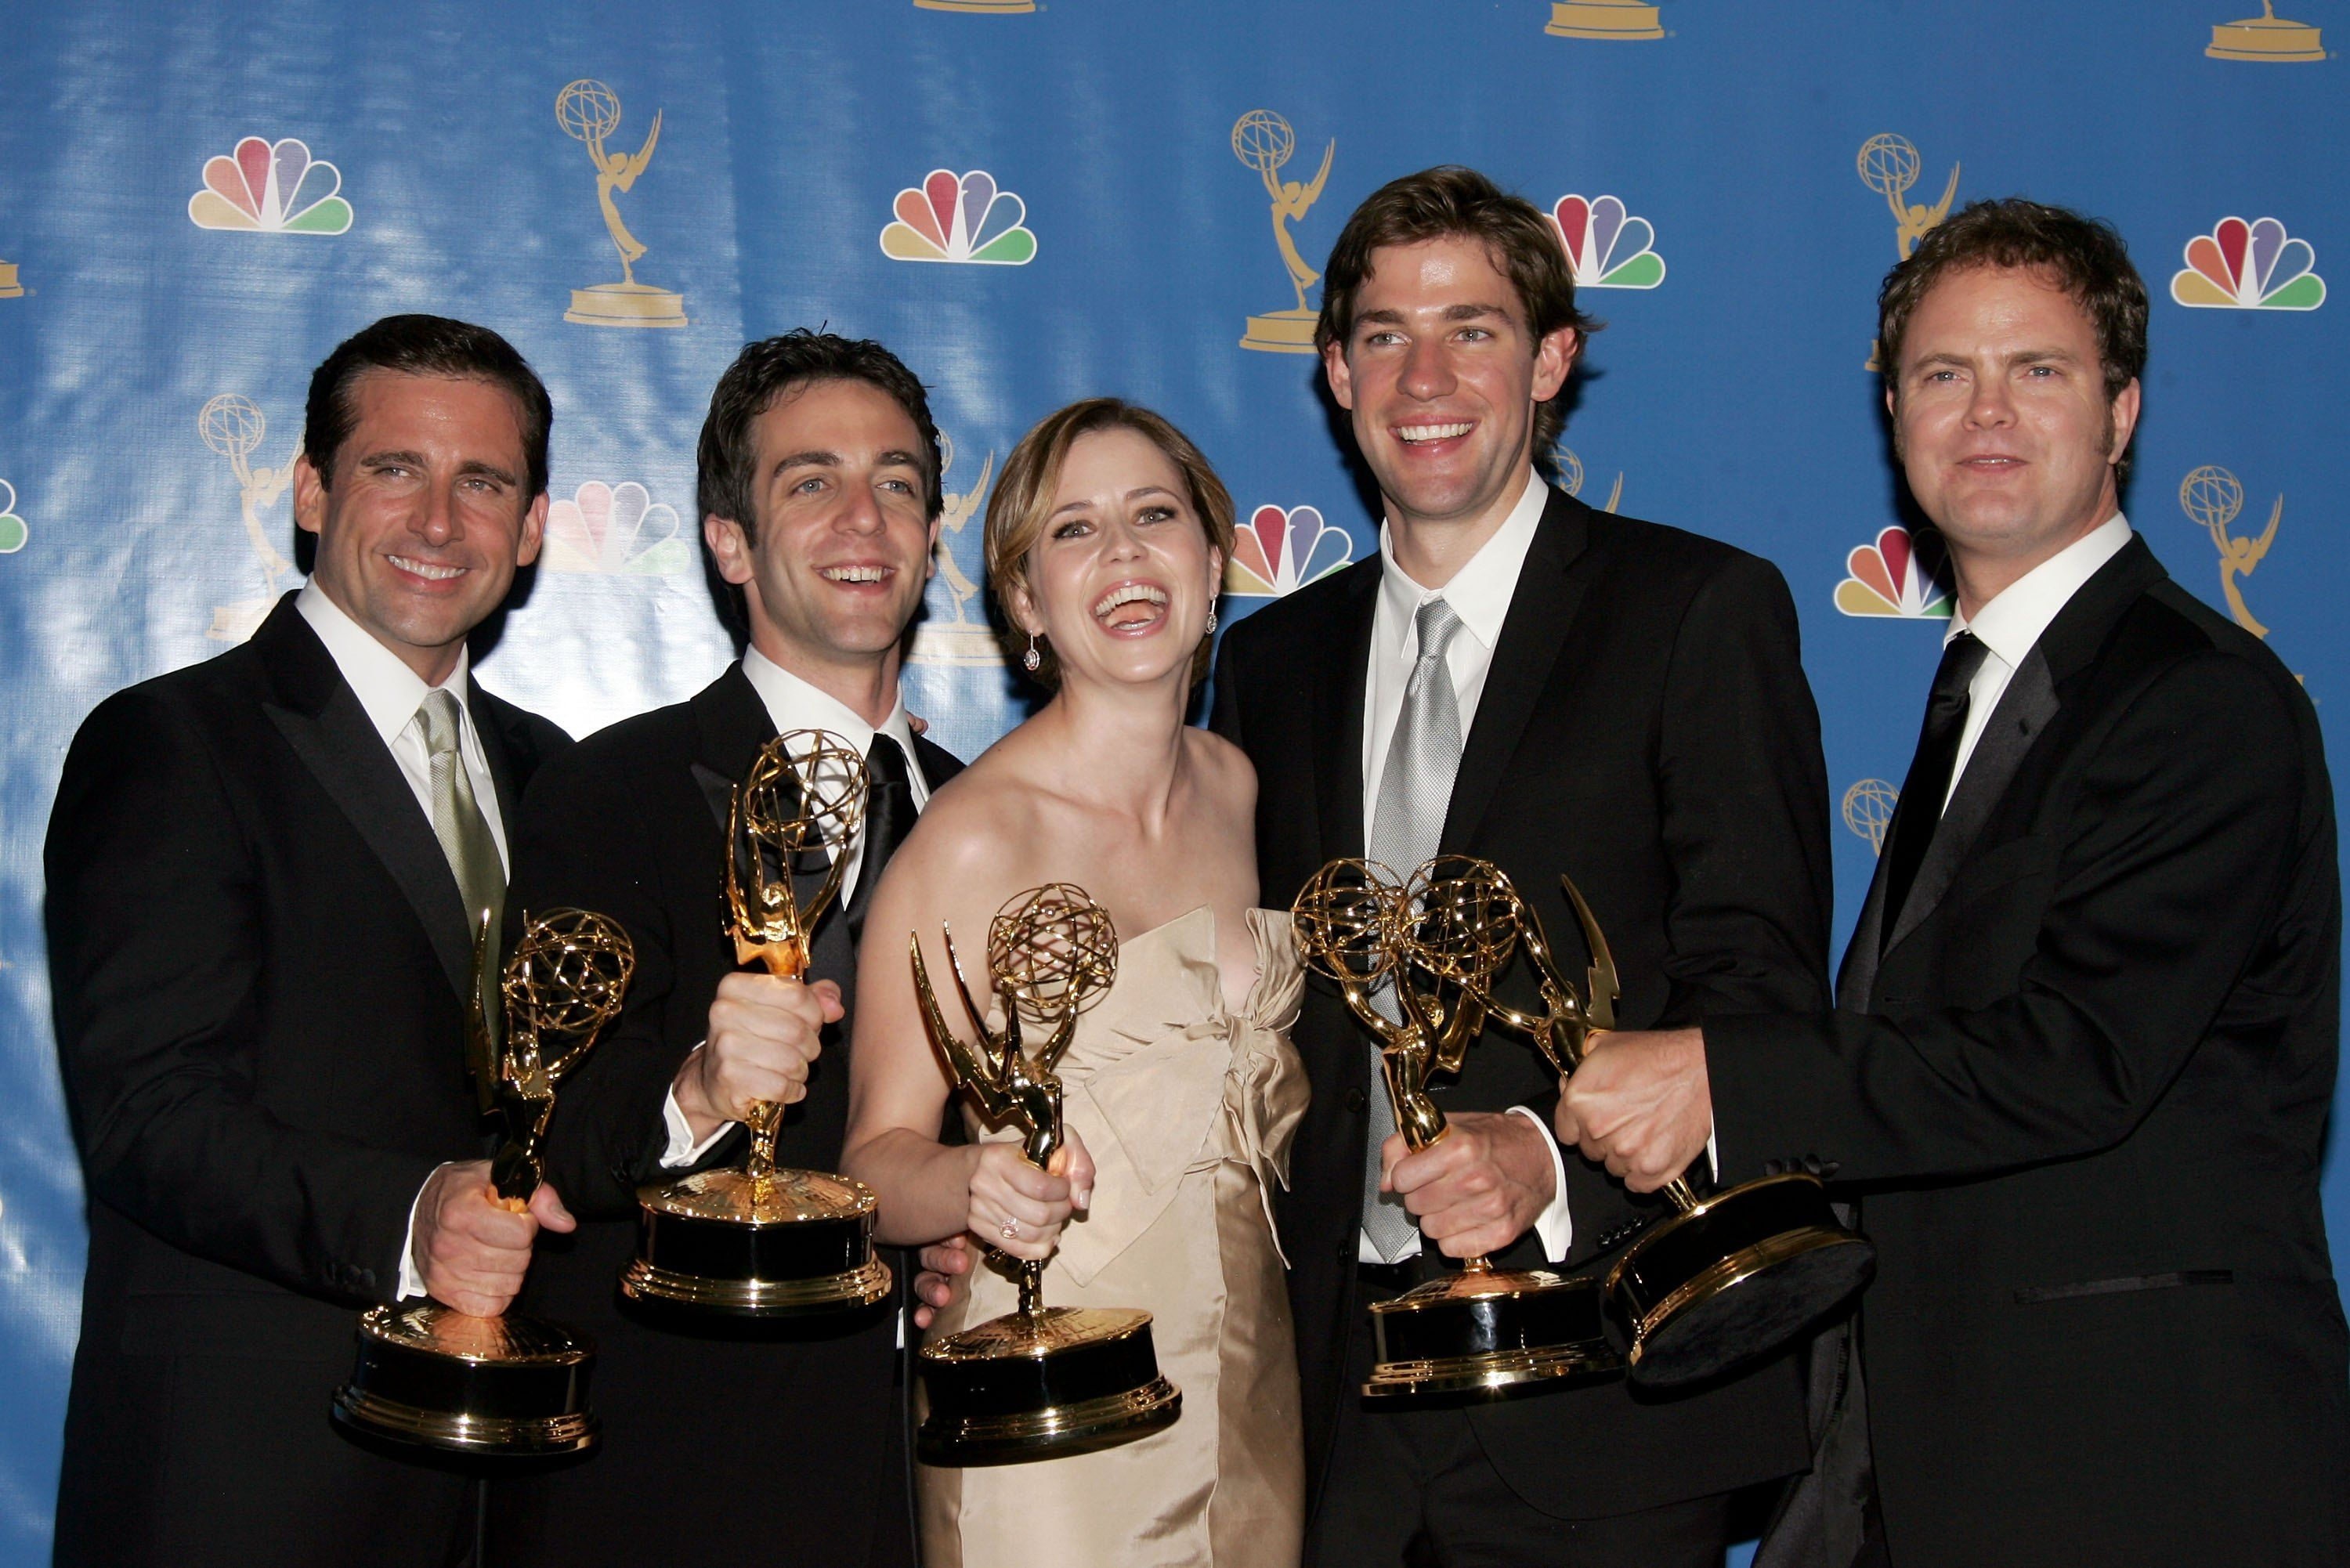 The cast of The Office / Getty Images